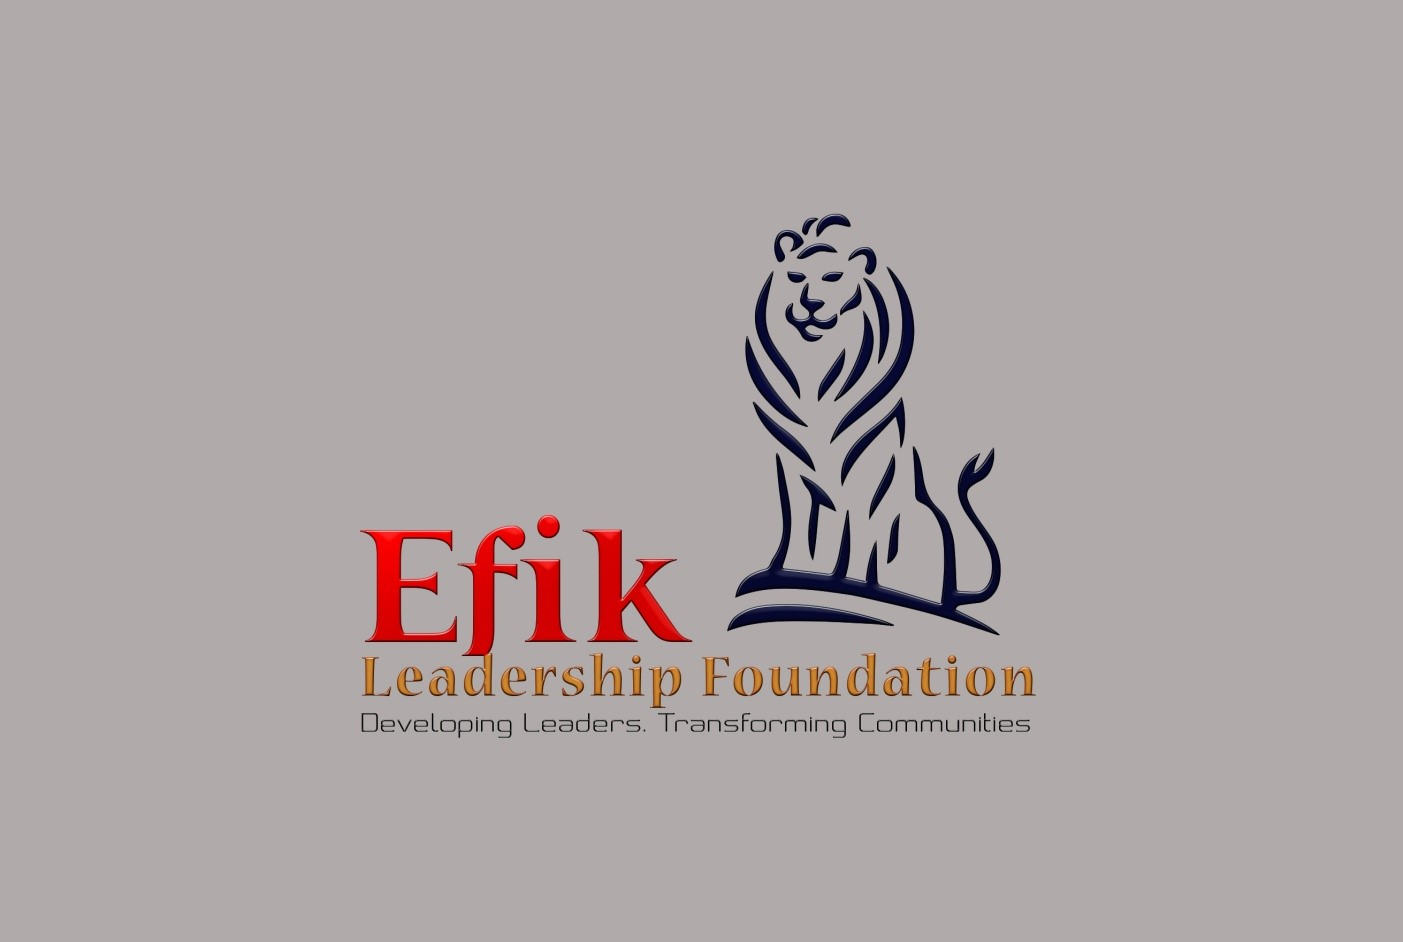 STATEMENT BY THE EFIK LEADERSHIP FOUNDATION (ELF) ON THE BIAFRA ISSUE